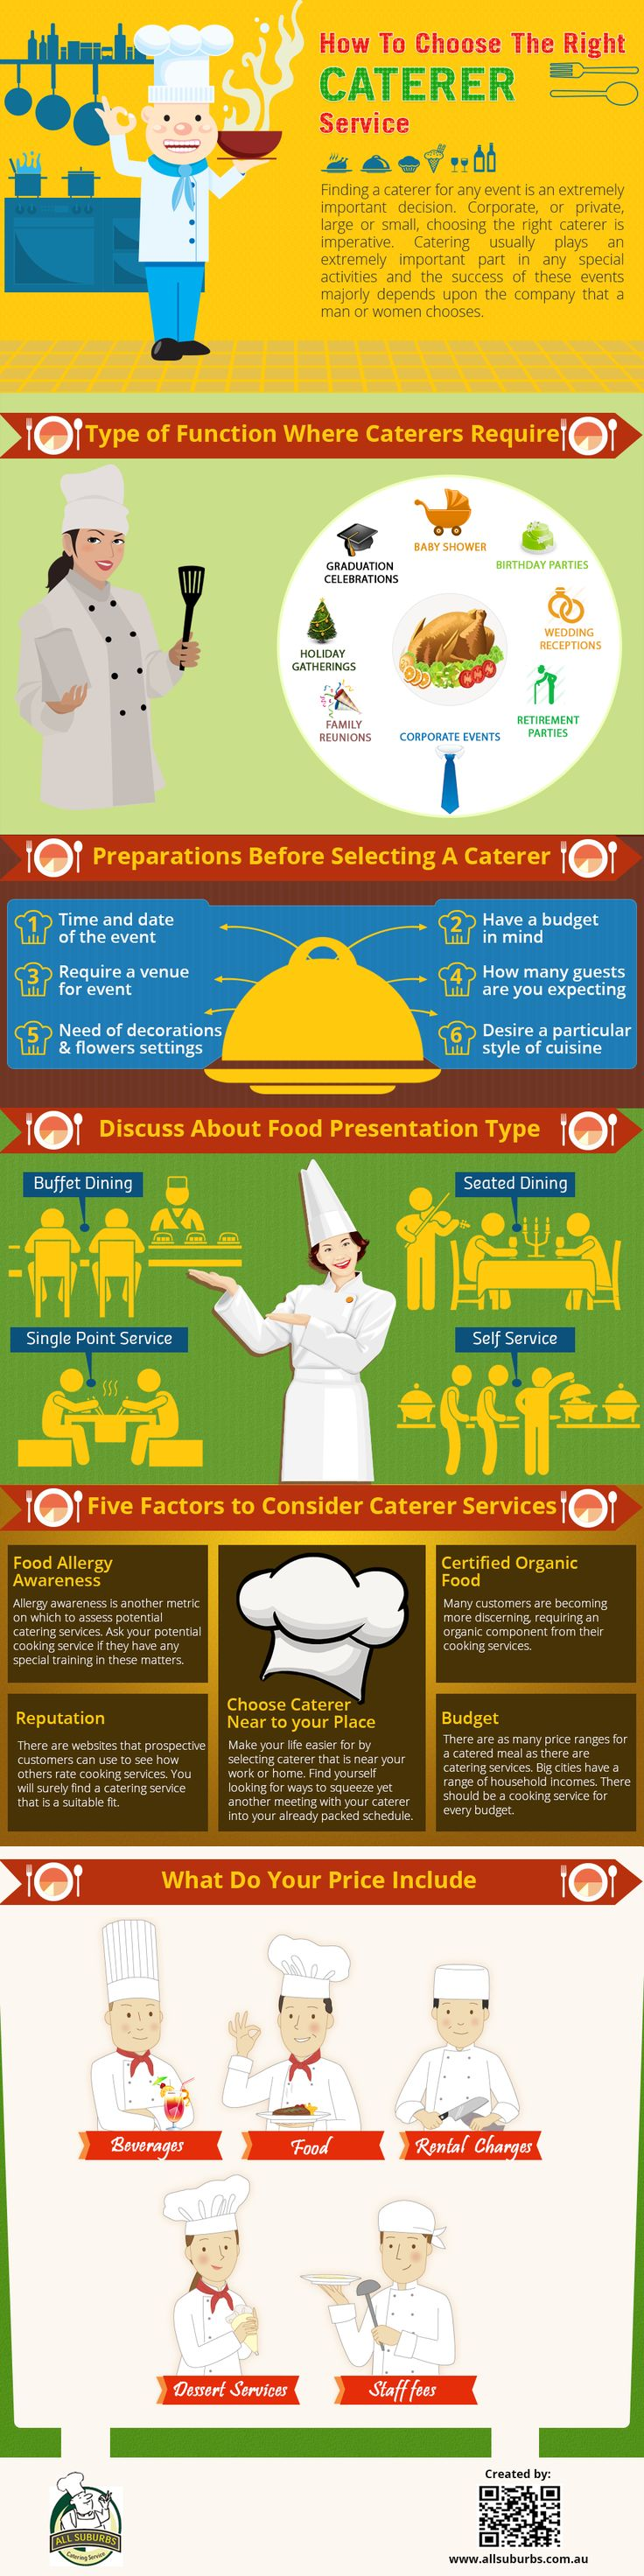 How To Choose The Right Caterer Service [INFOGRAPHIC] #caterer#service